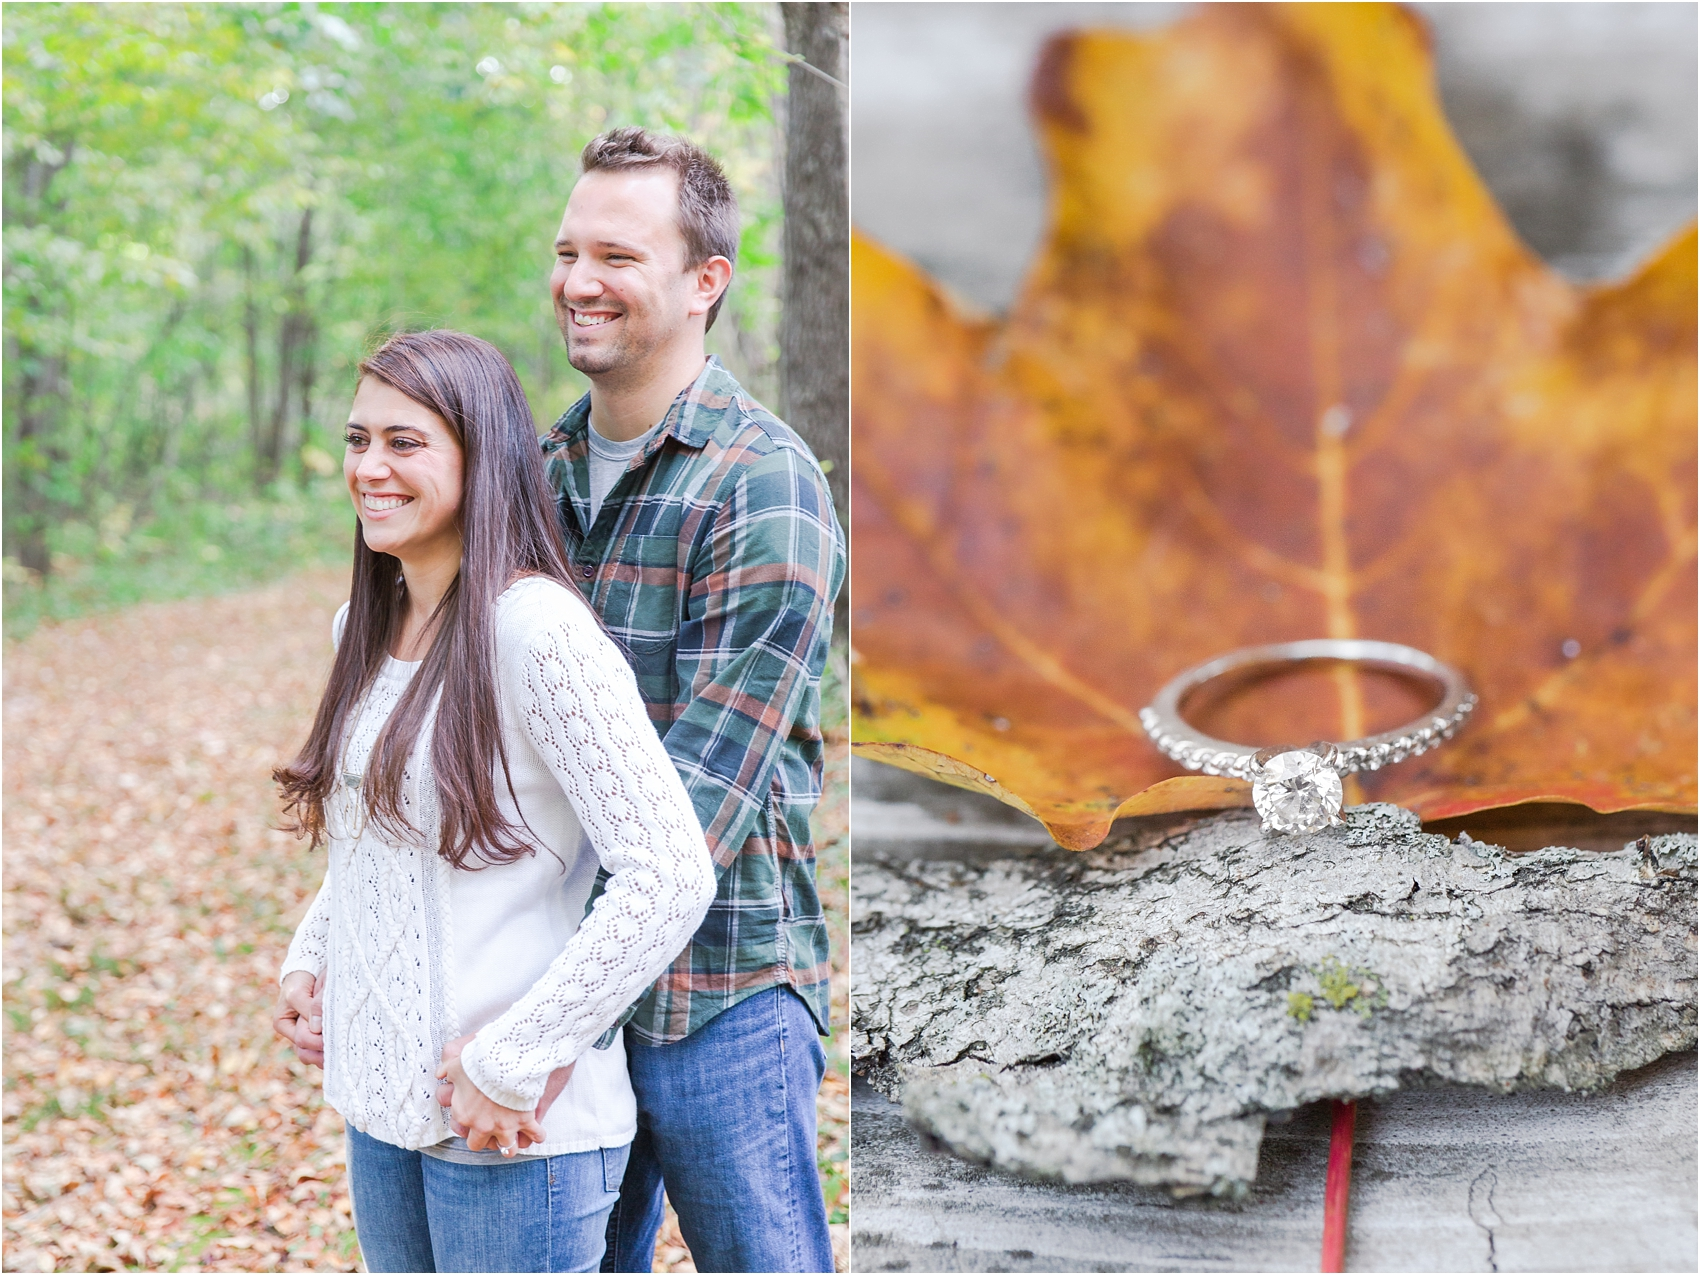 relaxed-autumn-engagement-photos-at-hudson-mills-metropark-in-dexter-mi-by-courtney-carolyn-photography_0013.jpg